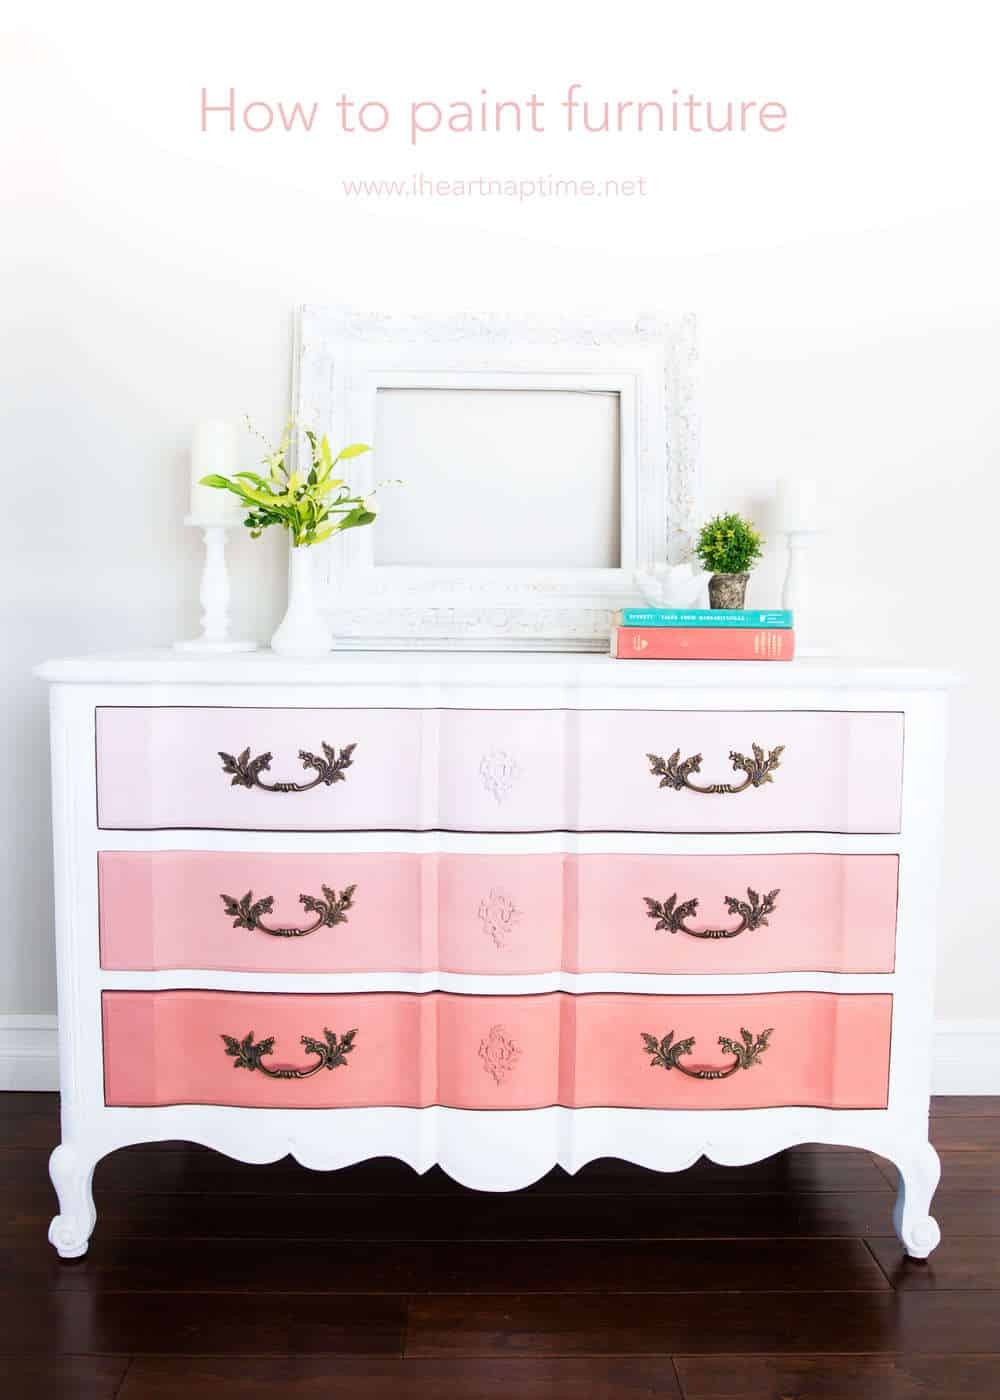 How to Paint Furniture and Ombre Dresser